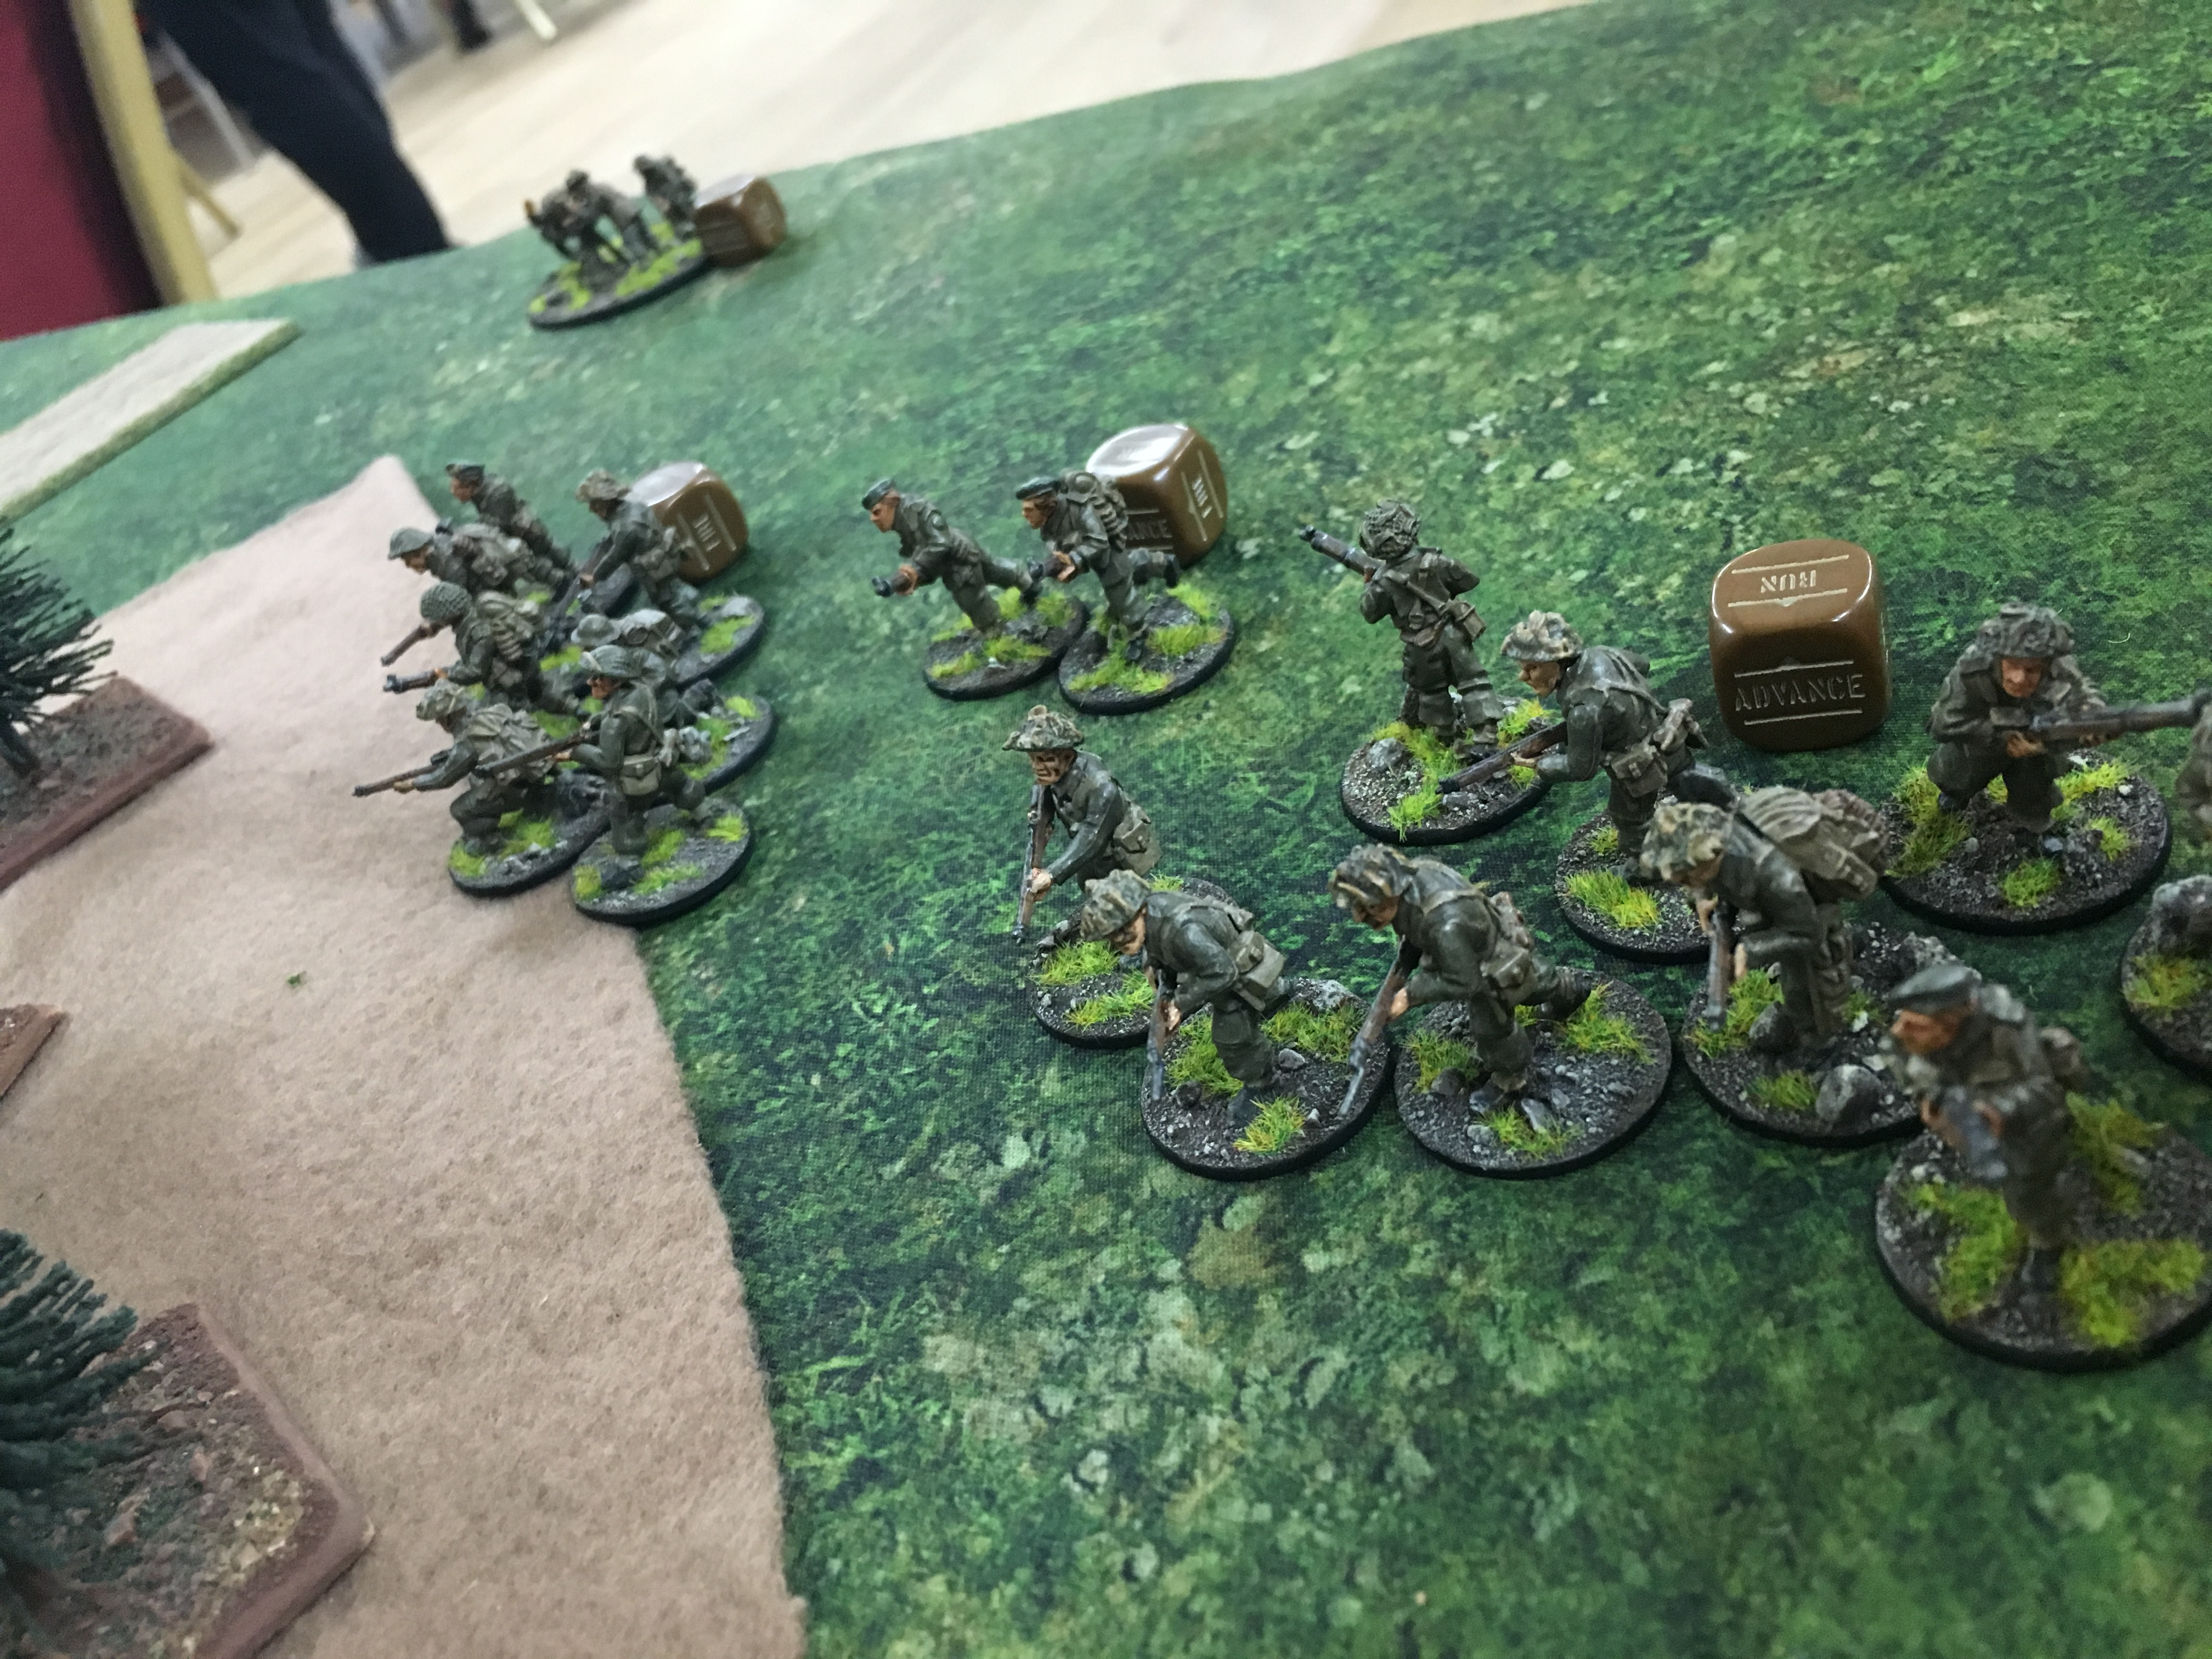 Canadian assault force versus German grenadier's in a fierce infantry engagement